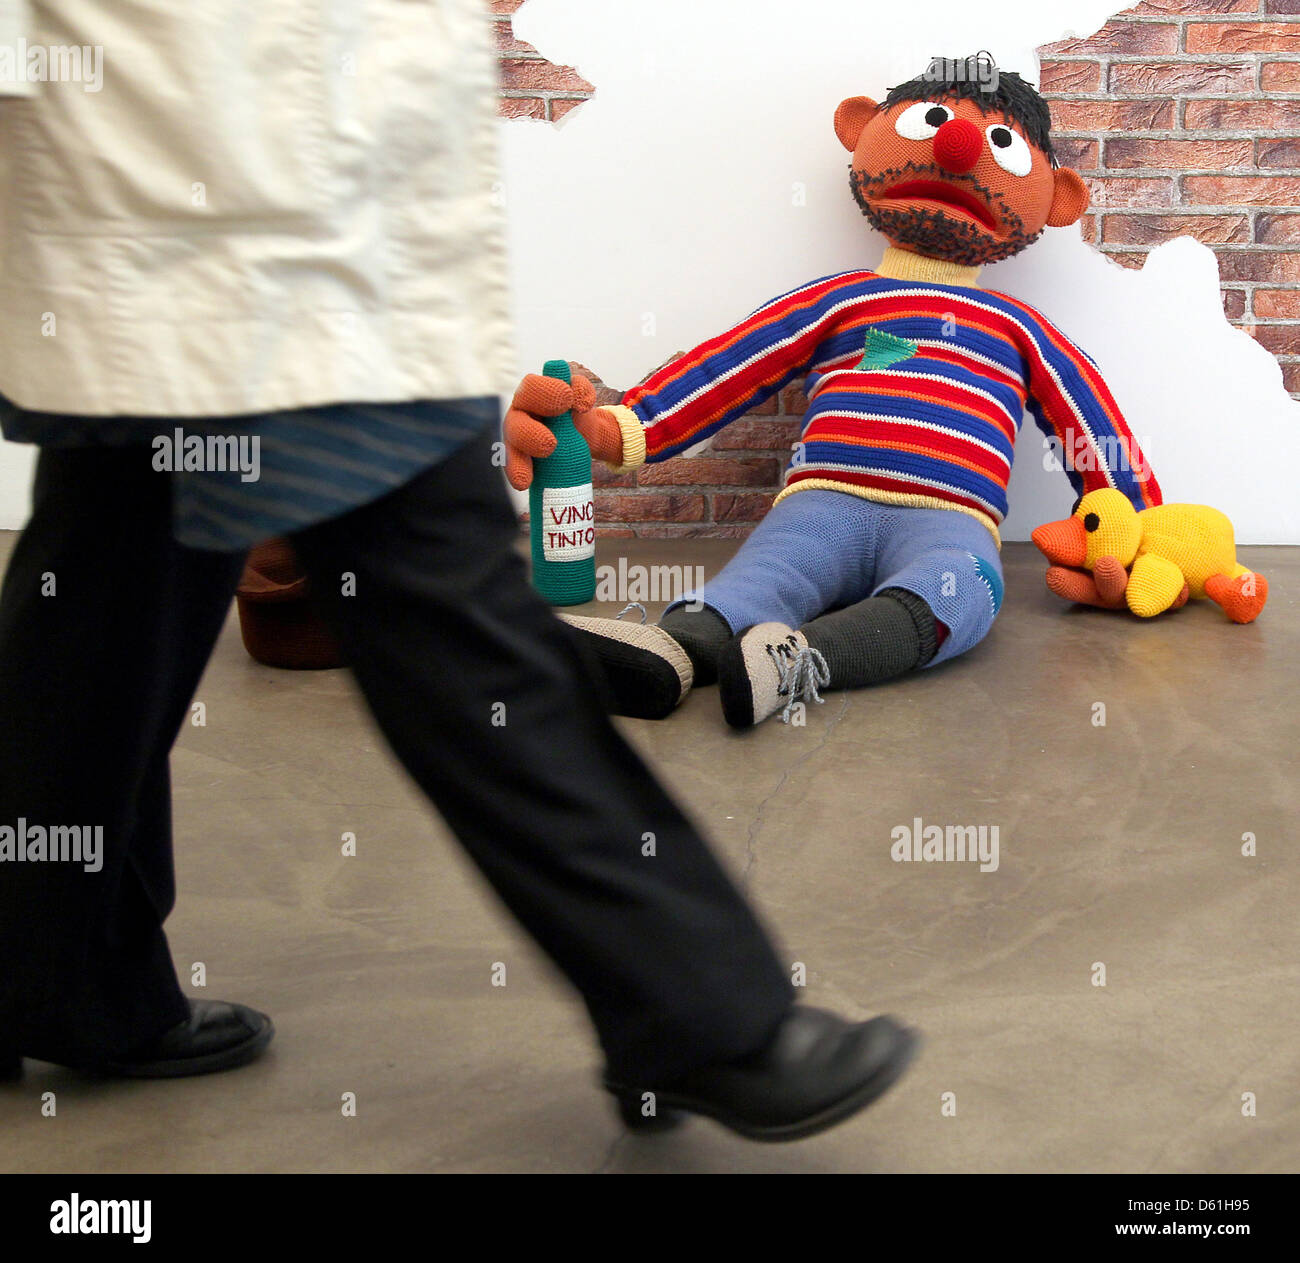 Ernie from Sesame Street as a homeless person by artist